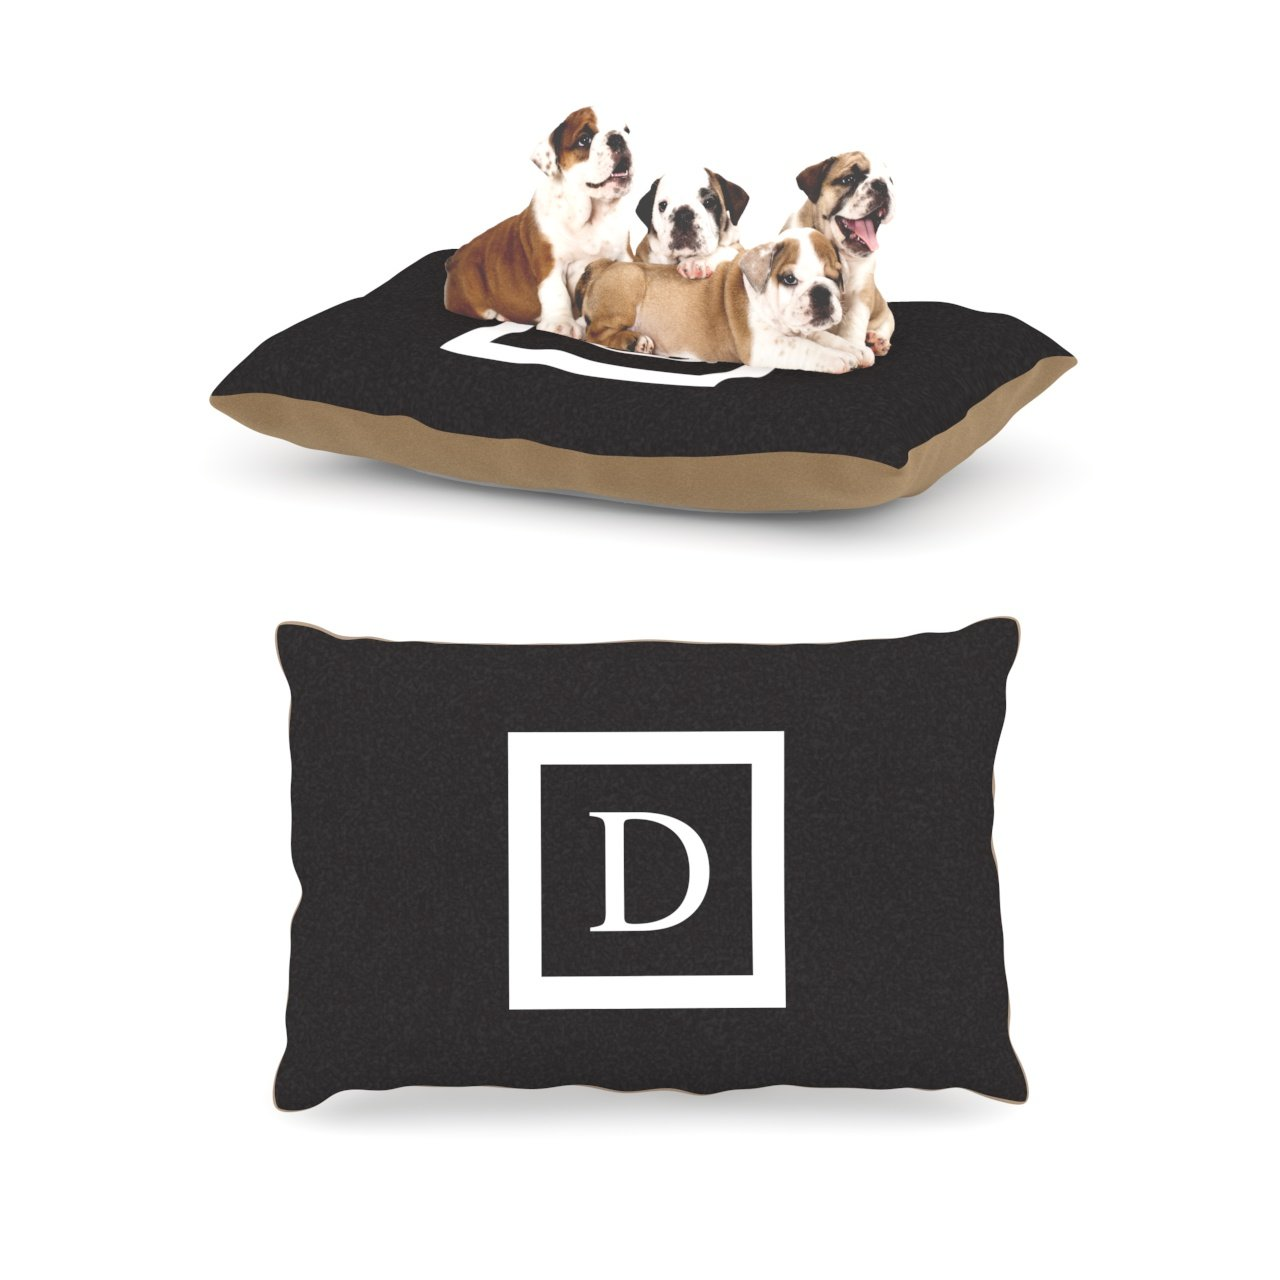 D Large 30  x 40 Kess InHouse Solid Black Fleece Dog Bed, 30 by 40Inch, Monogram LetterN